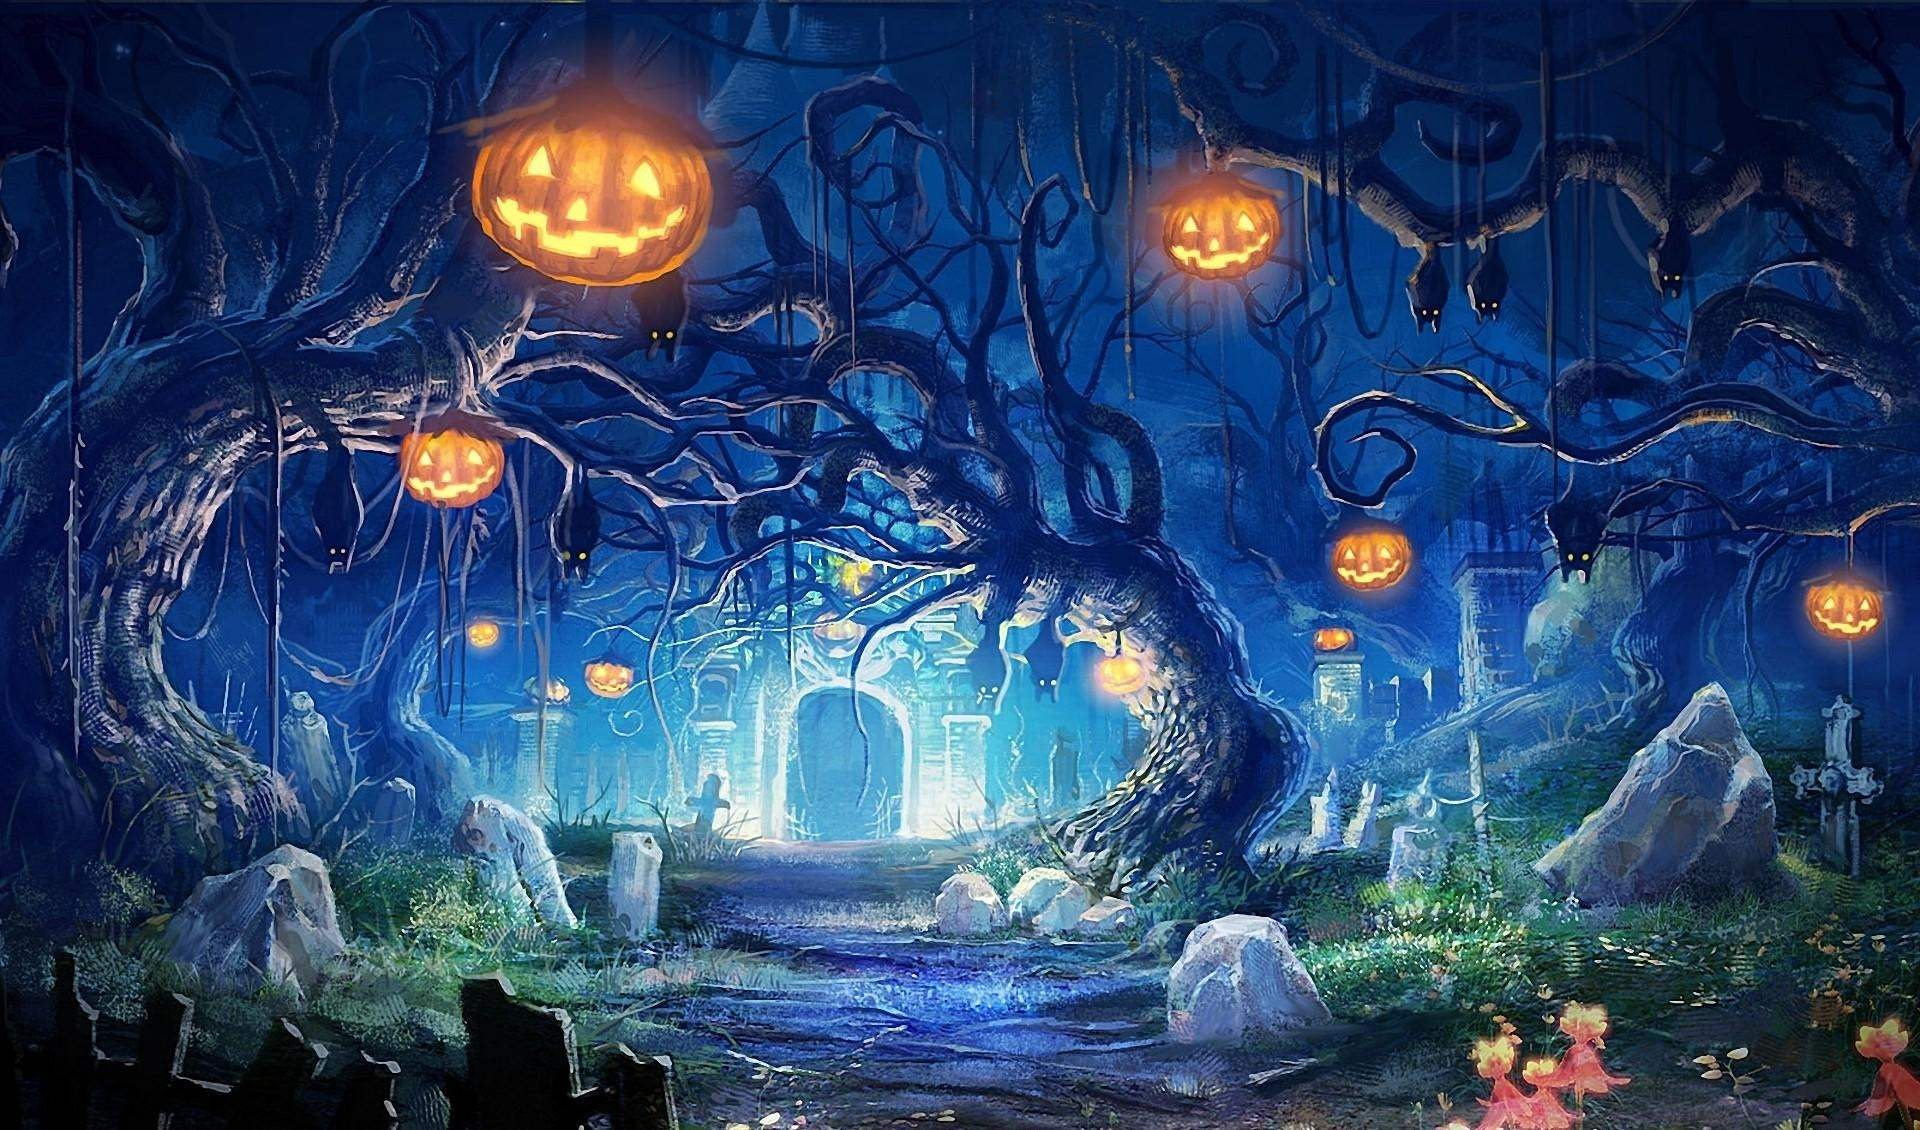 Halloween Design Wallpaper : Halloween wallpapers and pictures time to decorate your room